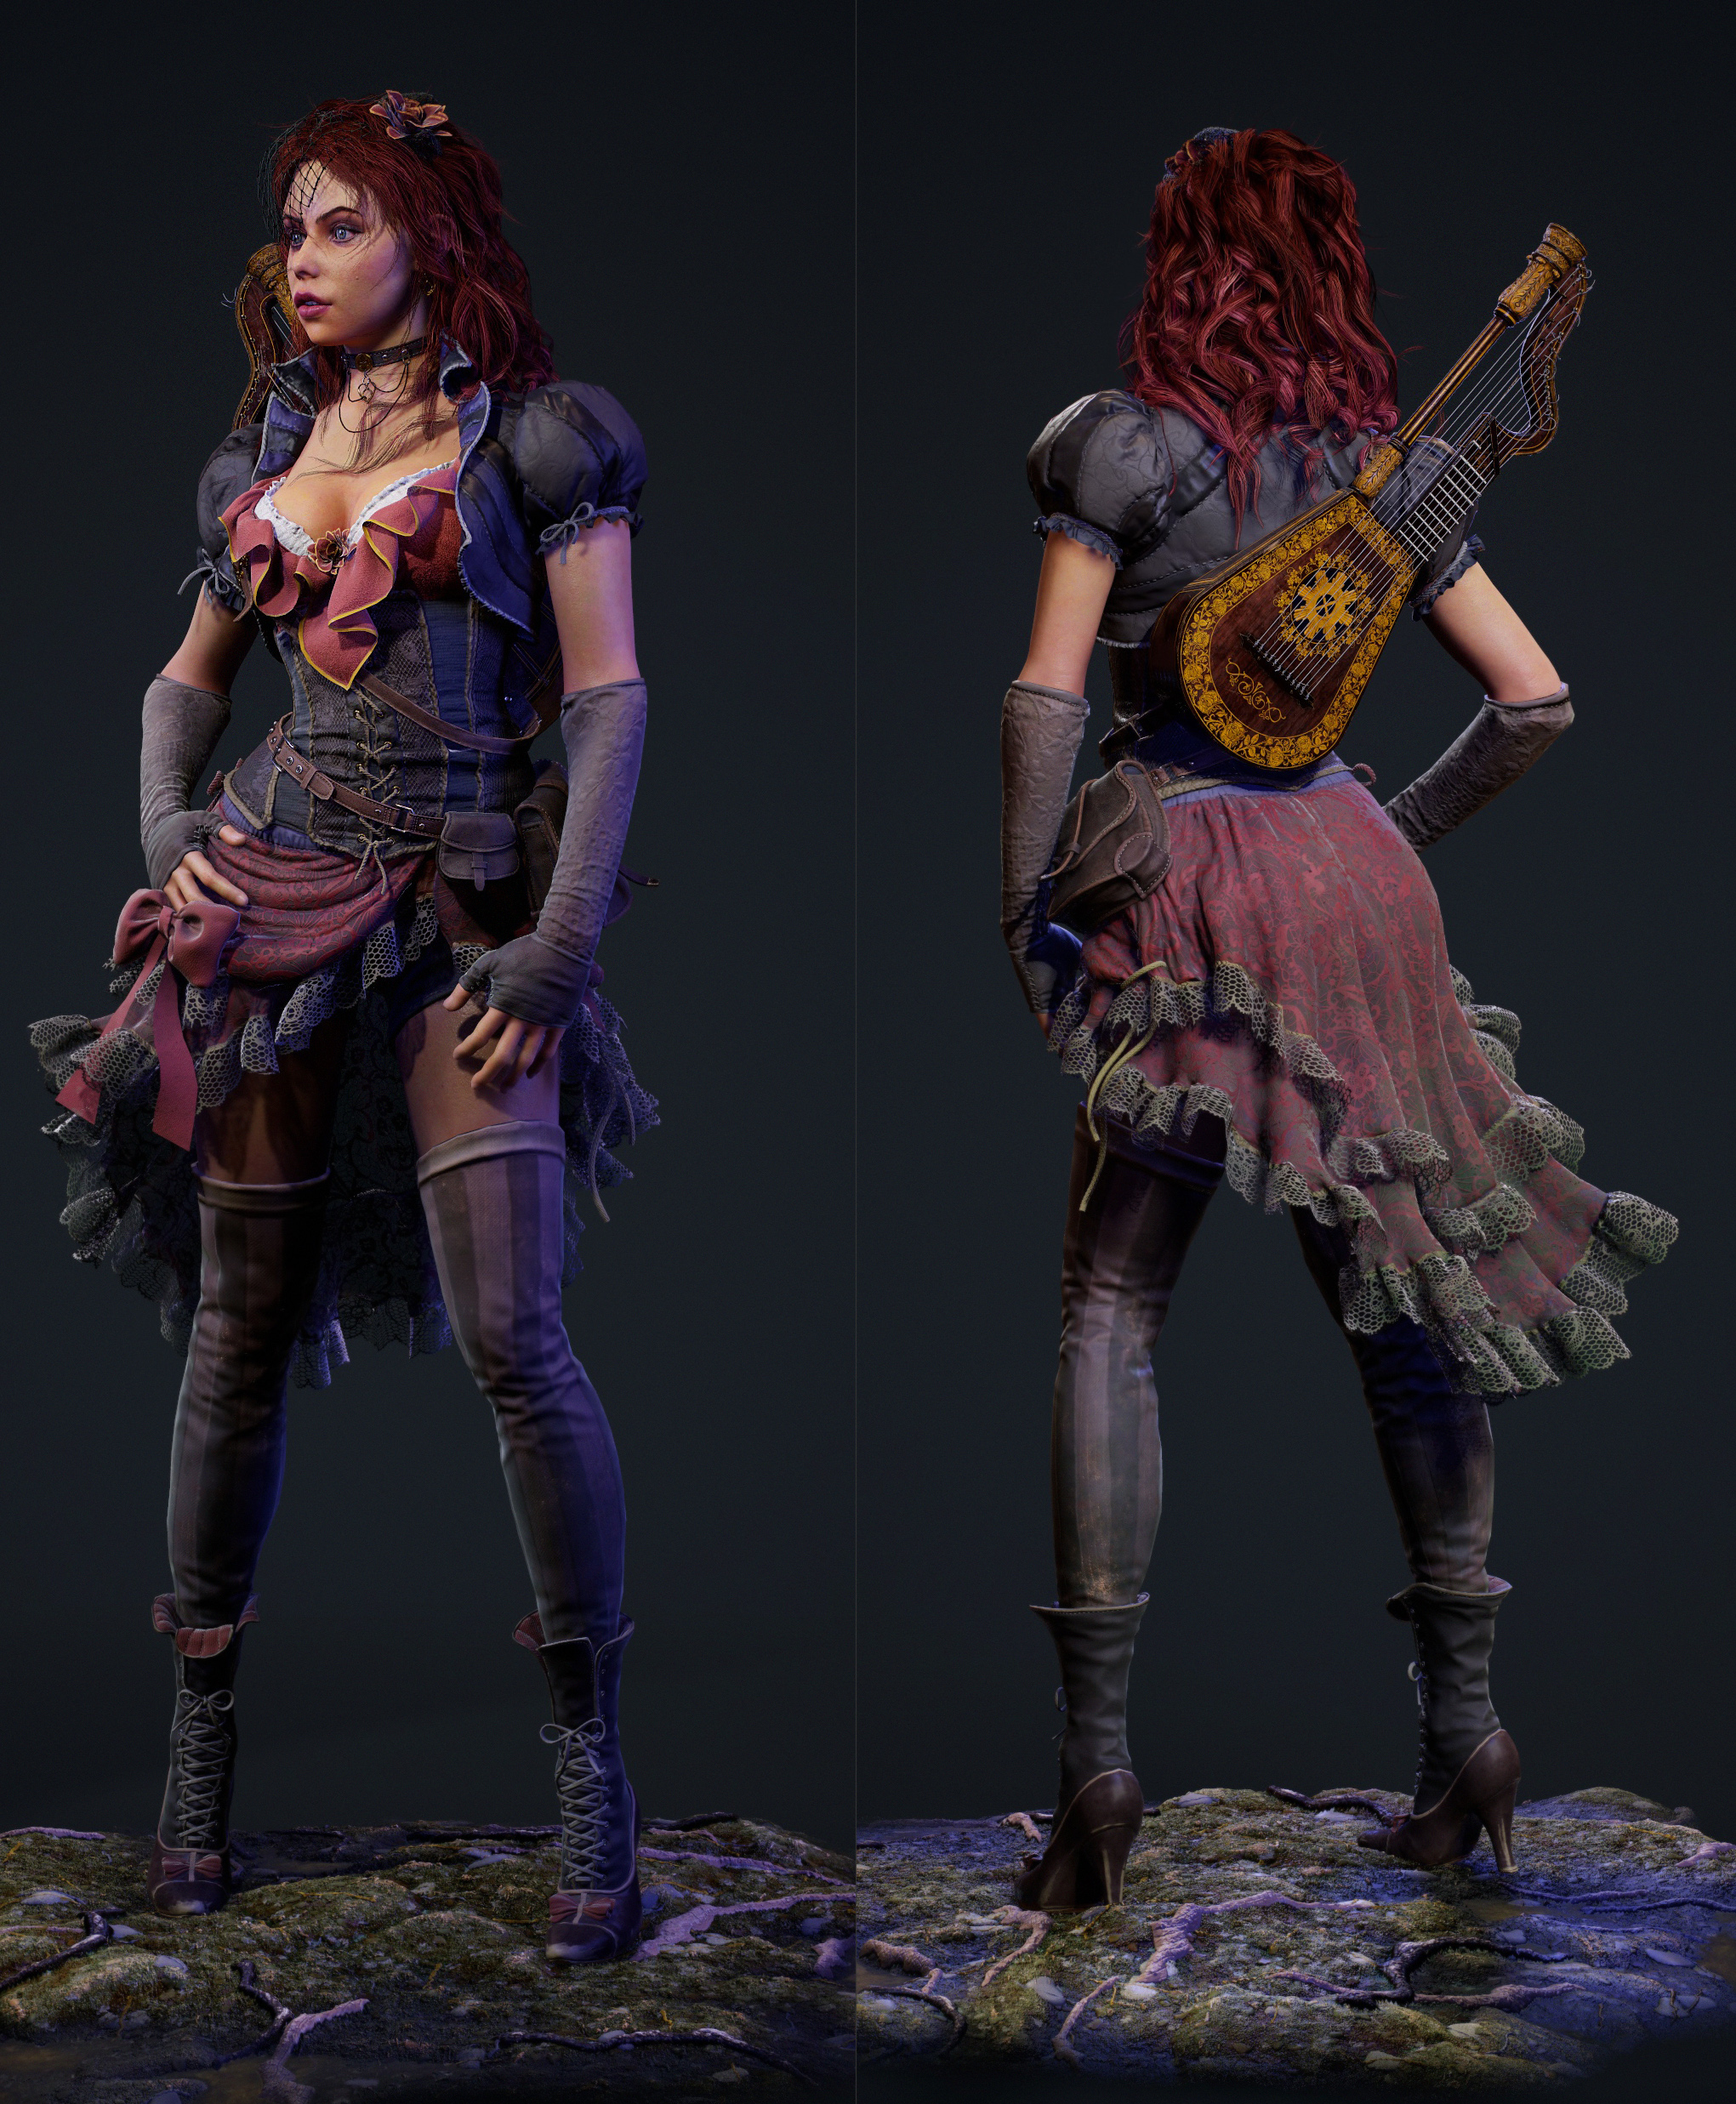 2019.04.06  Real time 3d character textured in substance painter/designer (77k polys and 17.6k HarpLute) four -4k sets of maps (skin,dress,accessories,harp-lute) Eyes and ground done in substance designer. You can buy all project files from my gumroad https://gum.co/DsefG